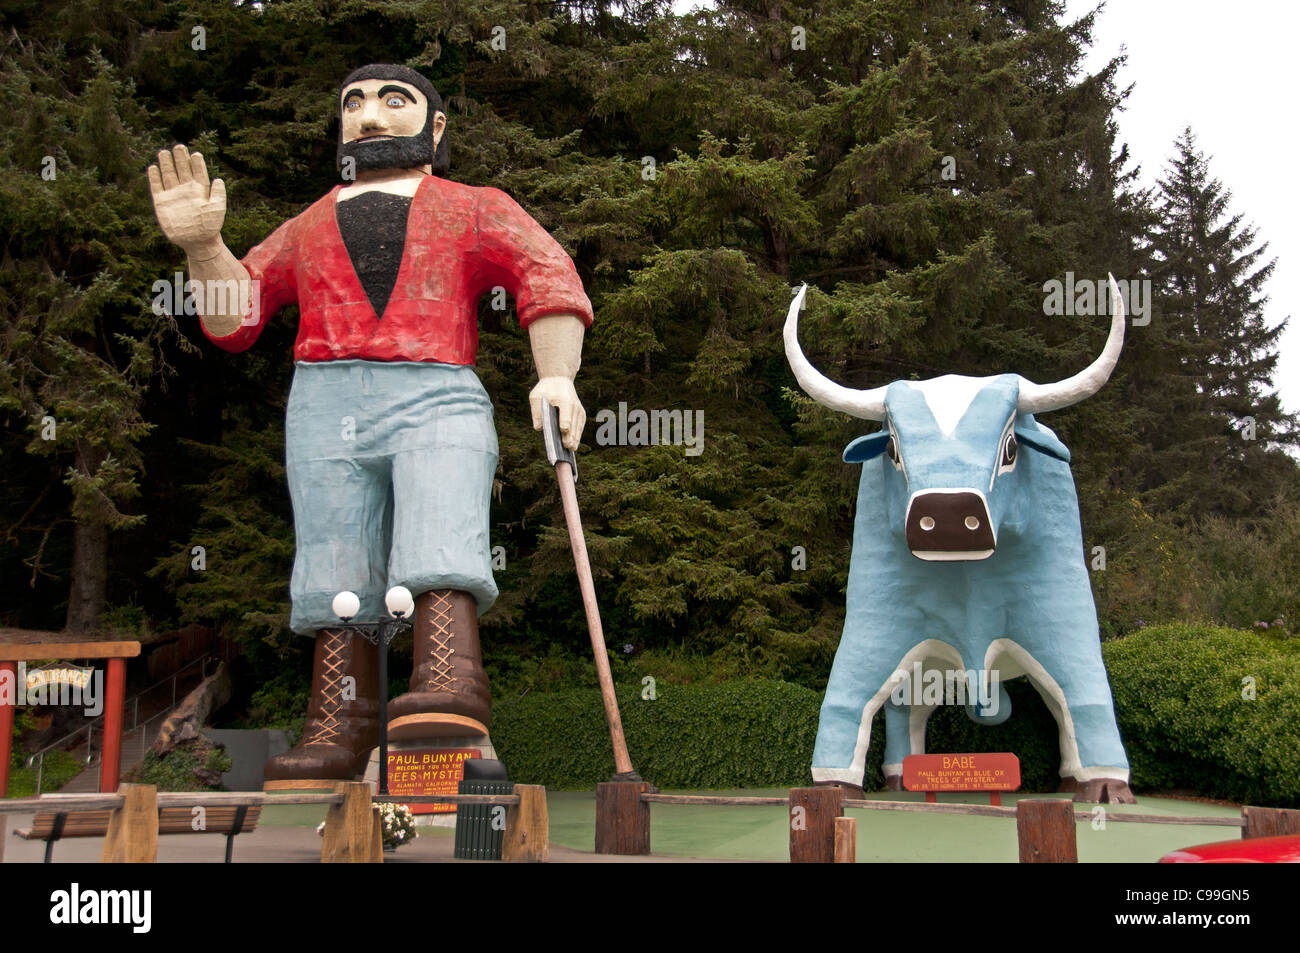 Klamath California Redwoods Paul Bunyan Blue Ox giant wooden sculpture statue United States of America - Stock Image